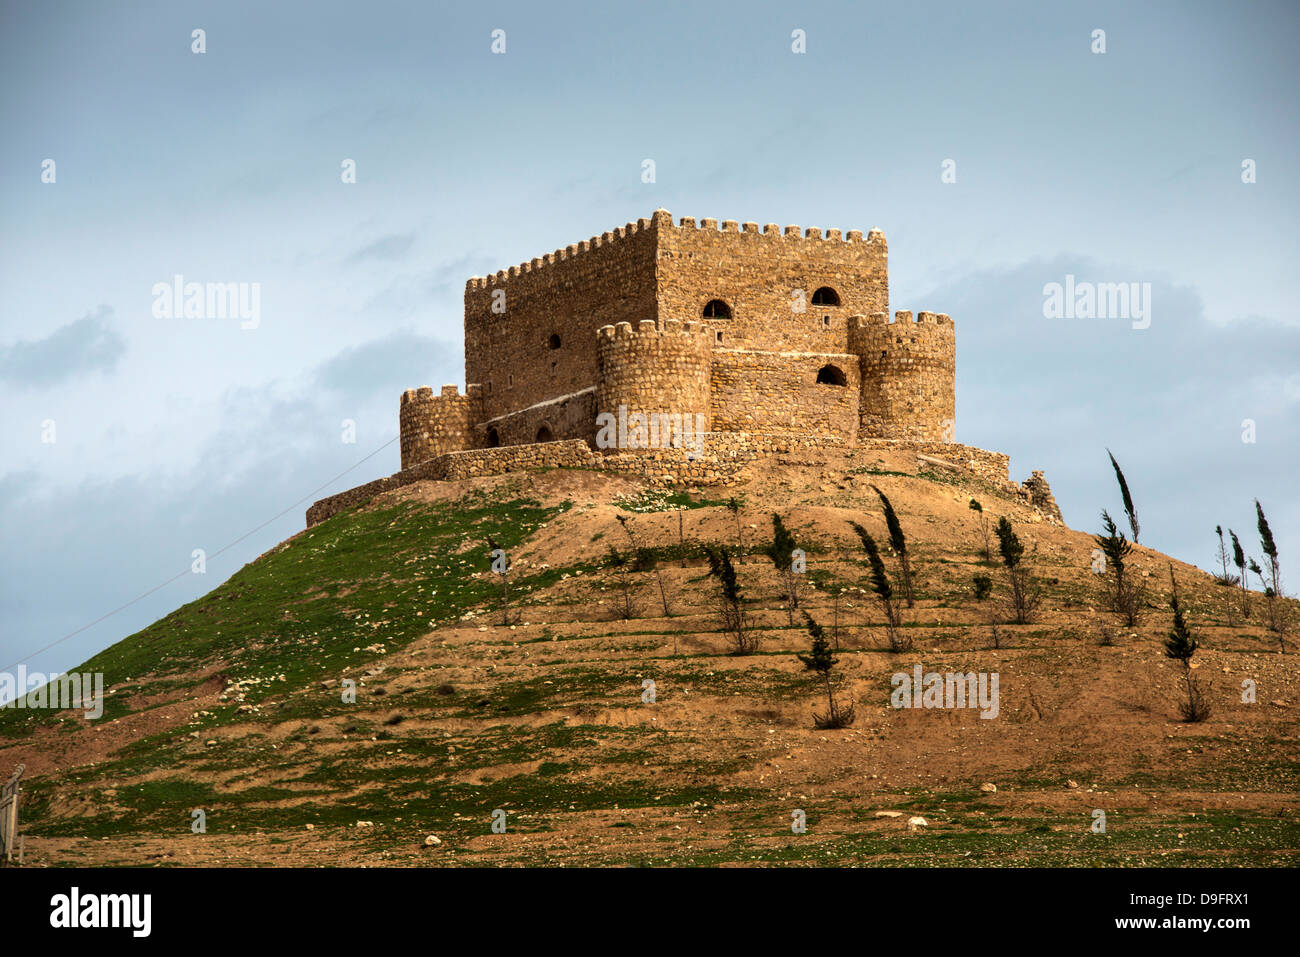 Castle Khanzad, Iraq Kurdistan, Iraq, Middle East - Stock Image